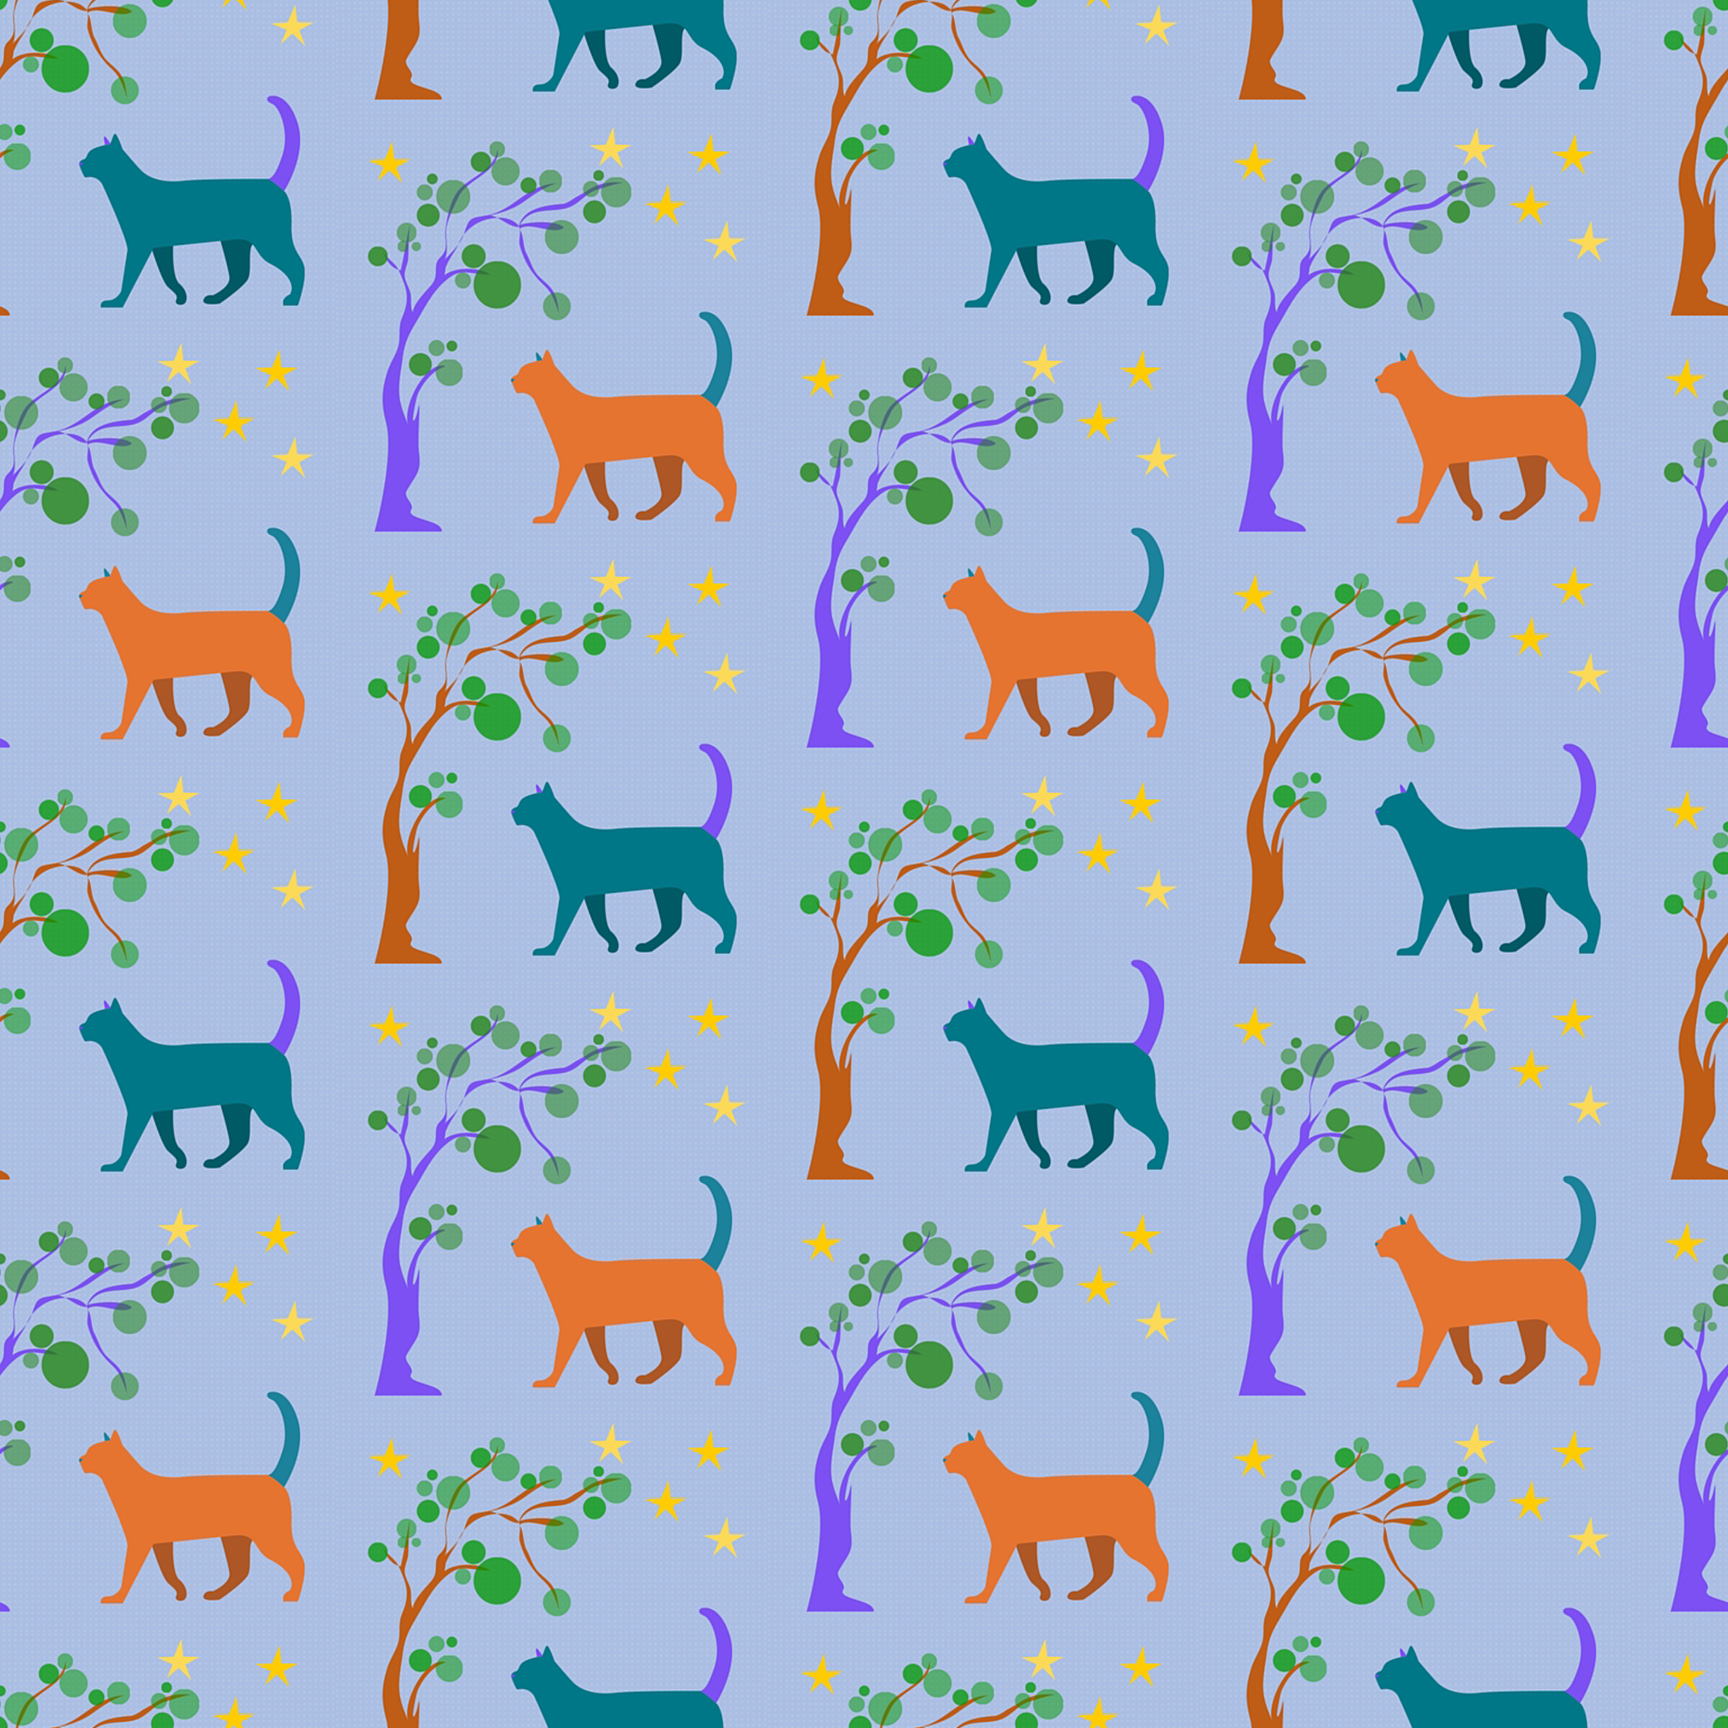 Fabric Orange and Teal Cats.jpg